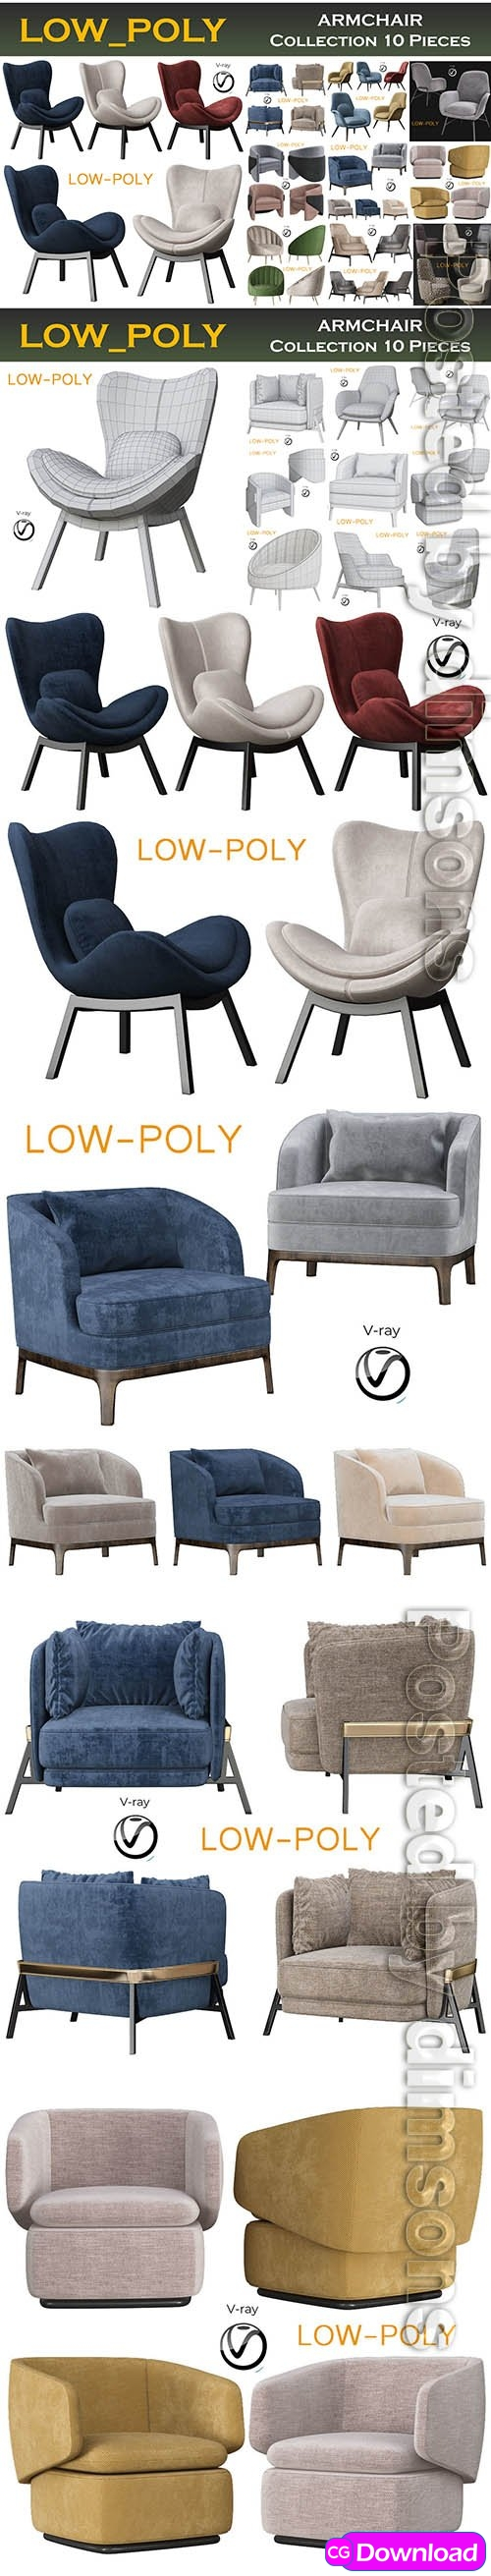 Download  Cgtrader – ARMCHAIR Collection 10 Pieces 3d model Low-poly 3D model Free